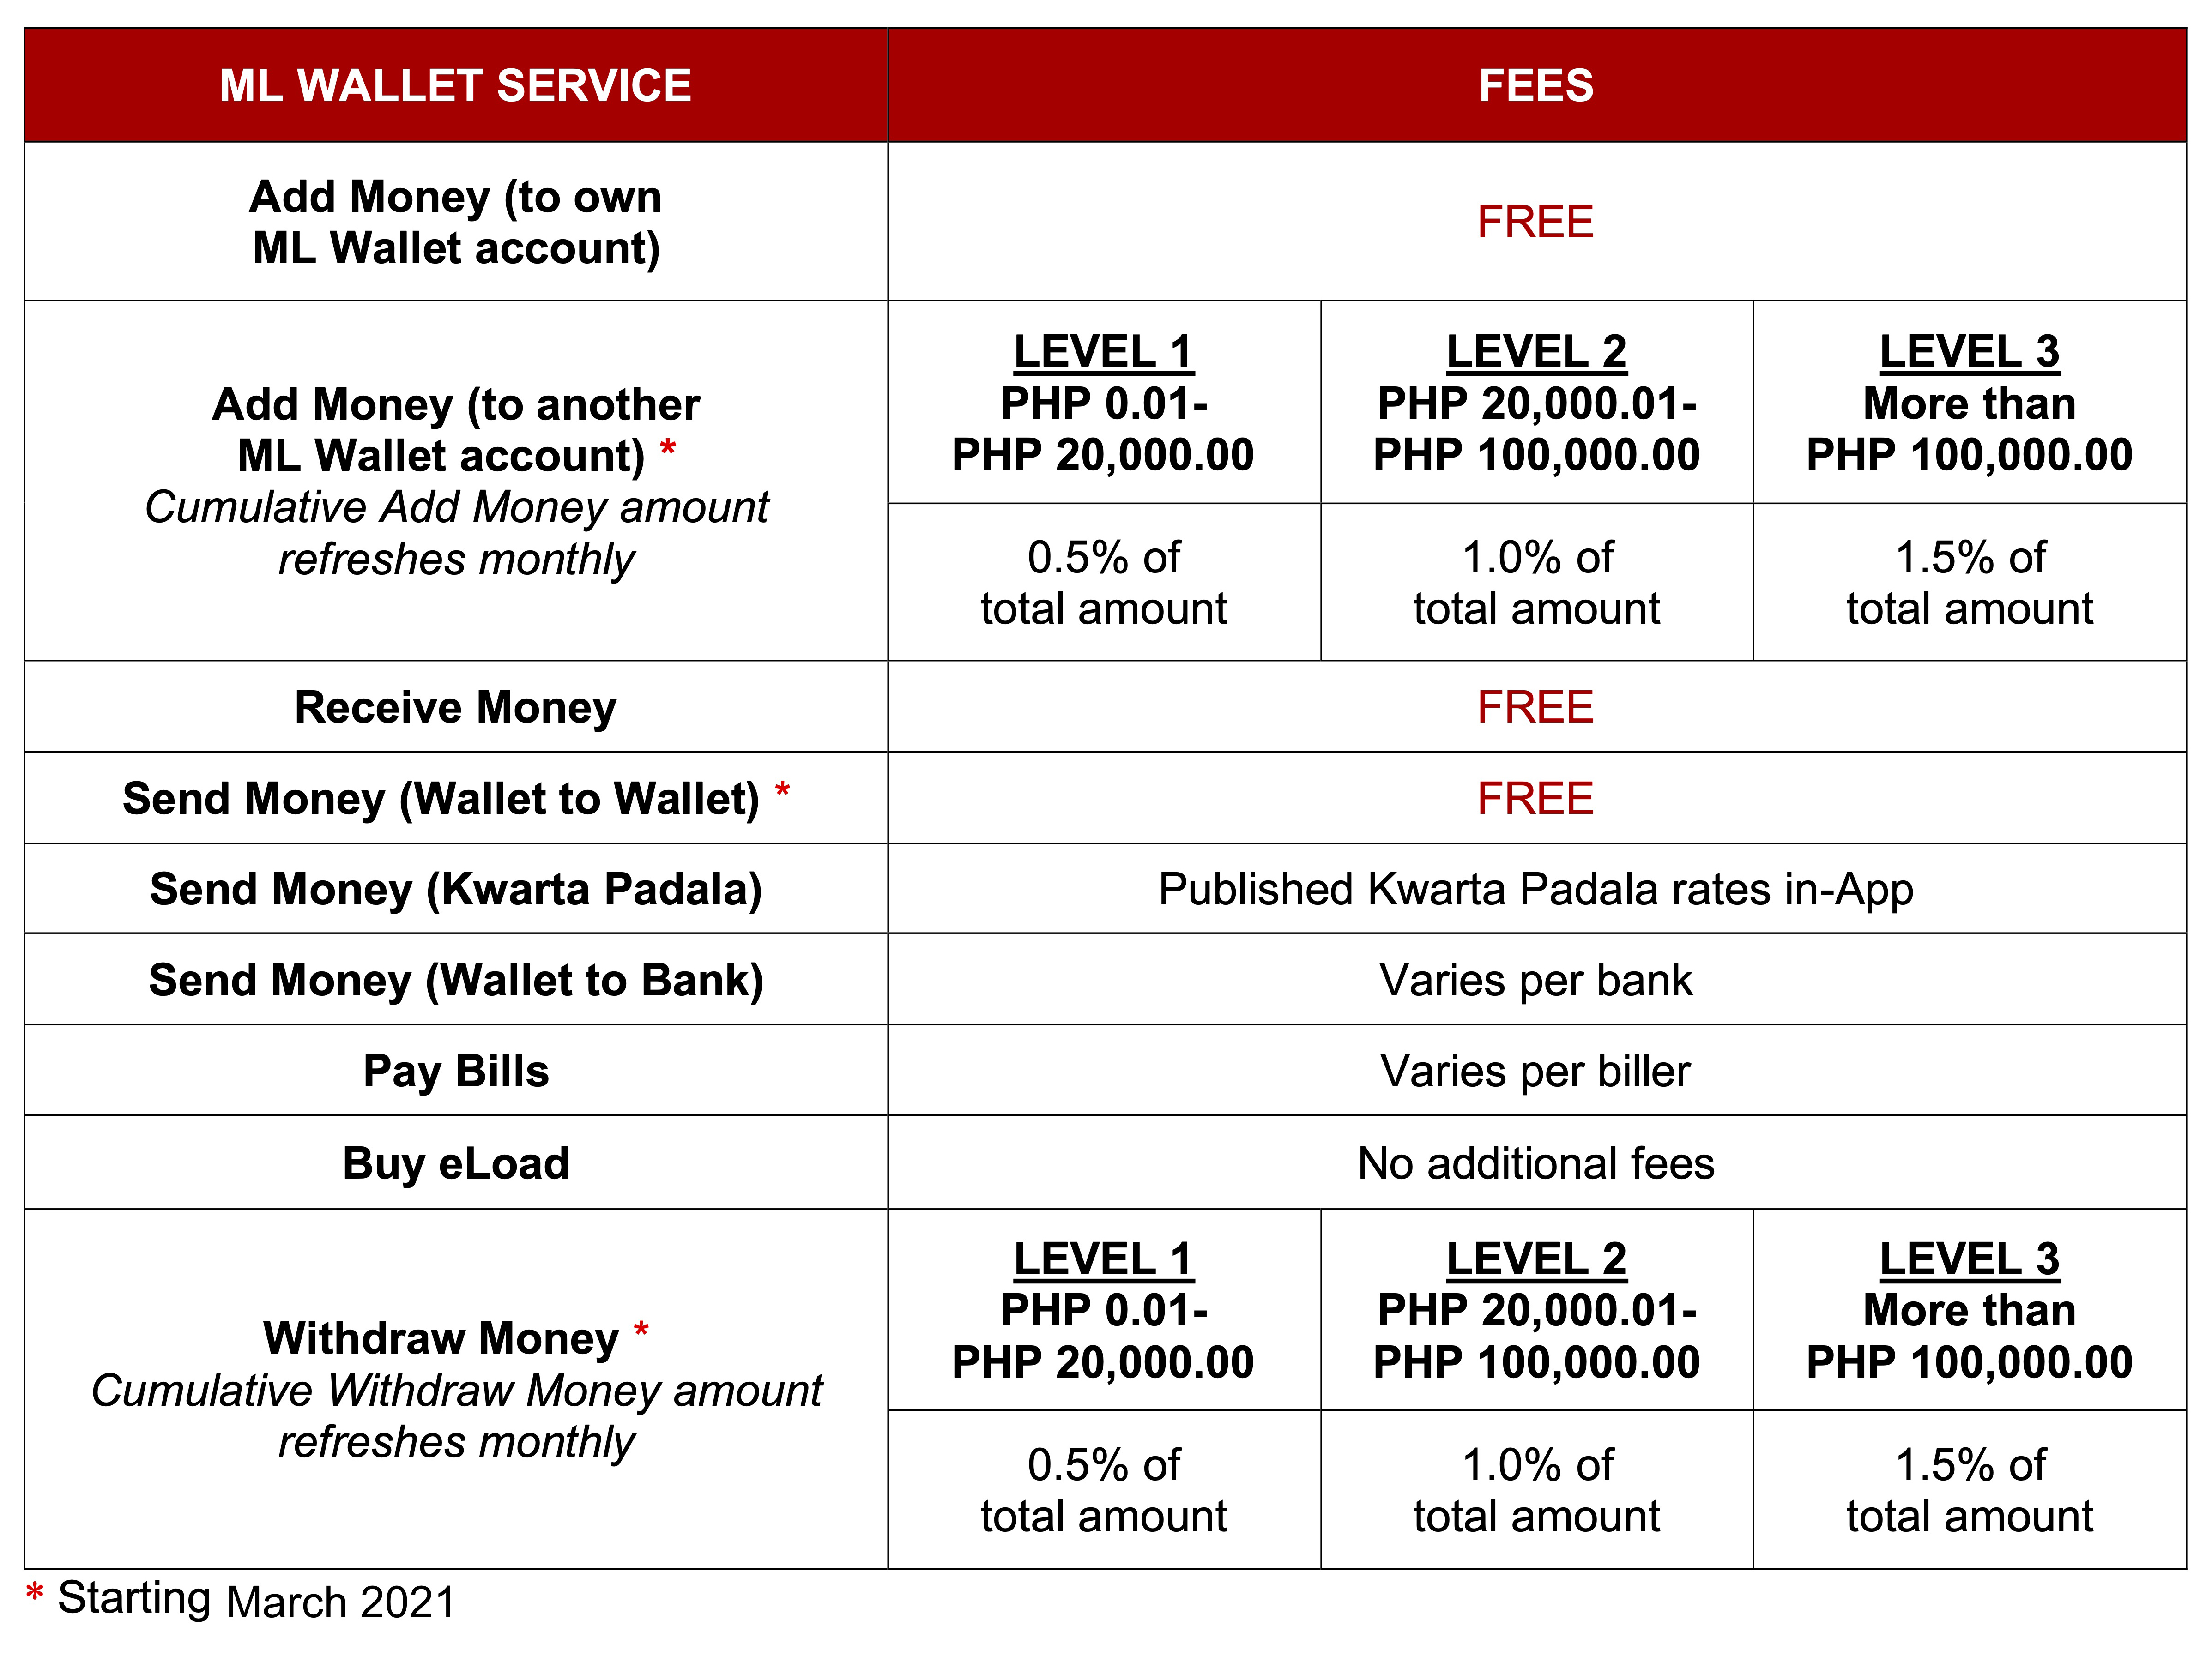 MLW Fees